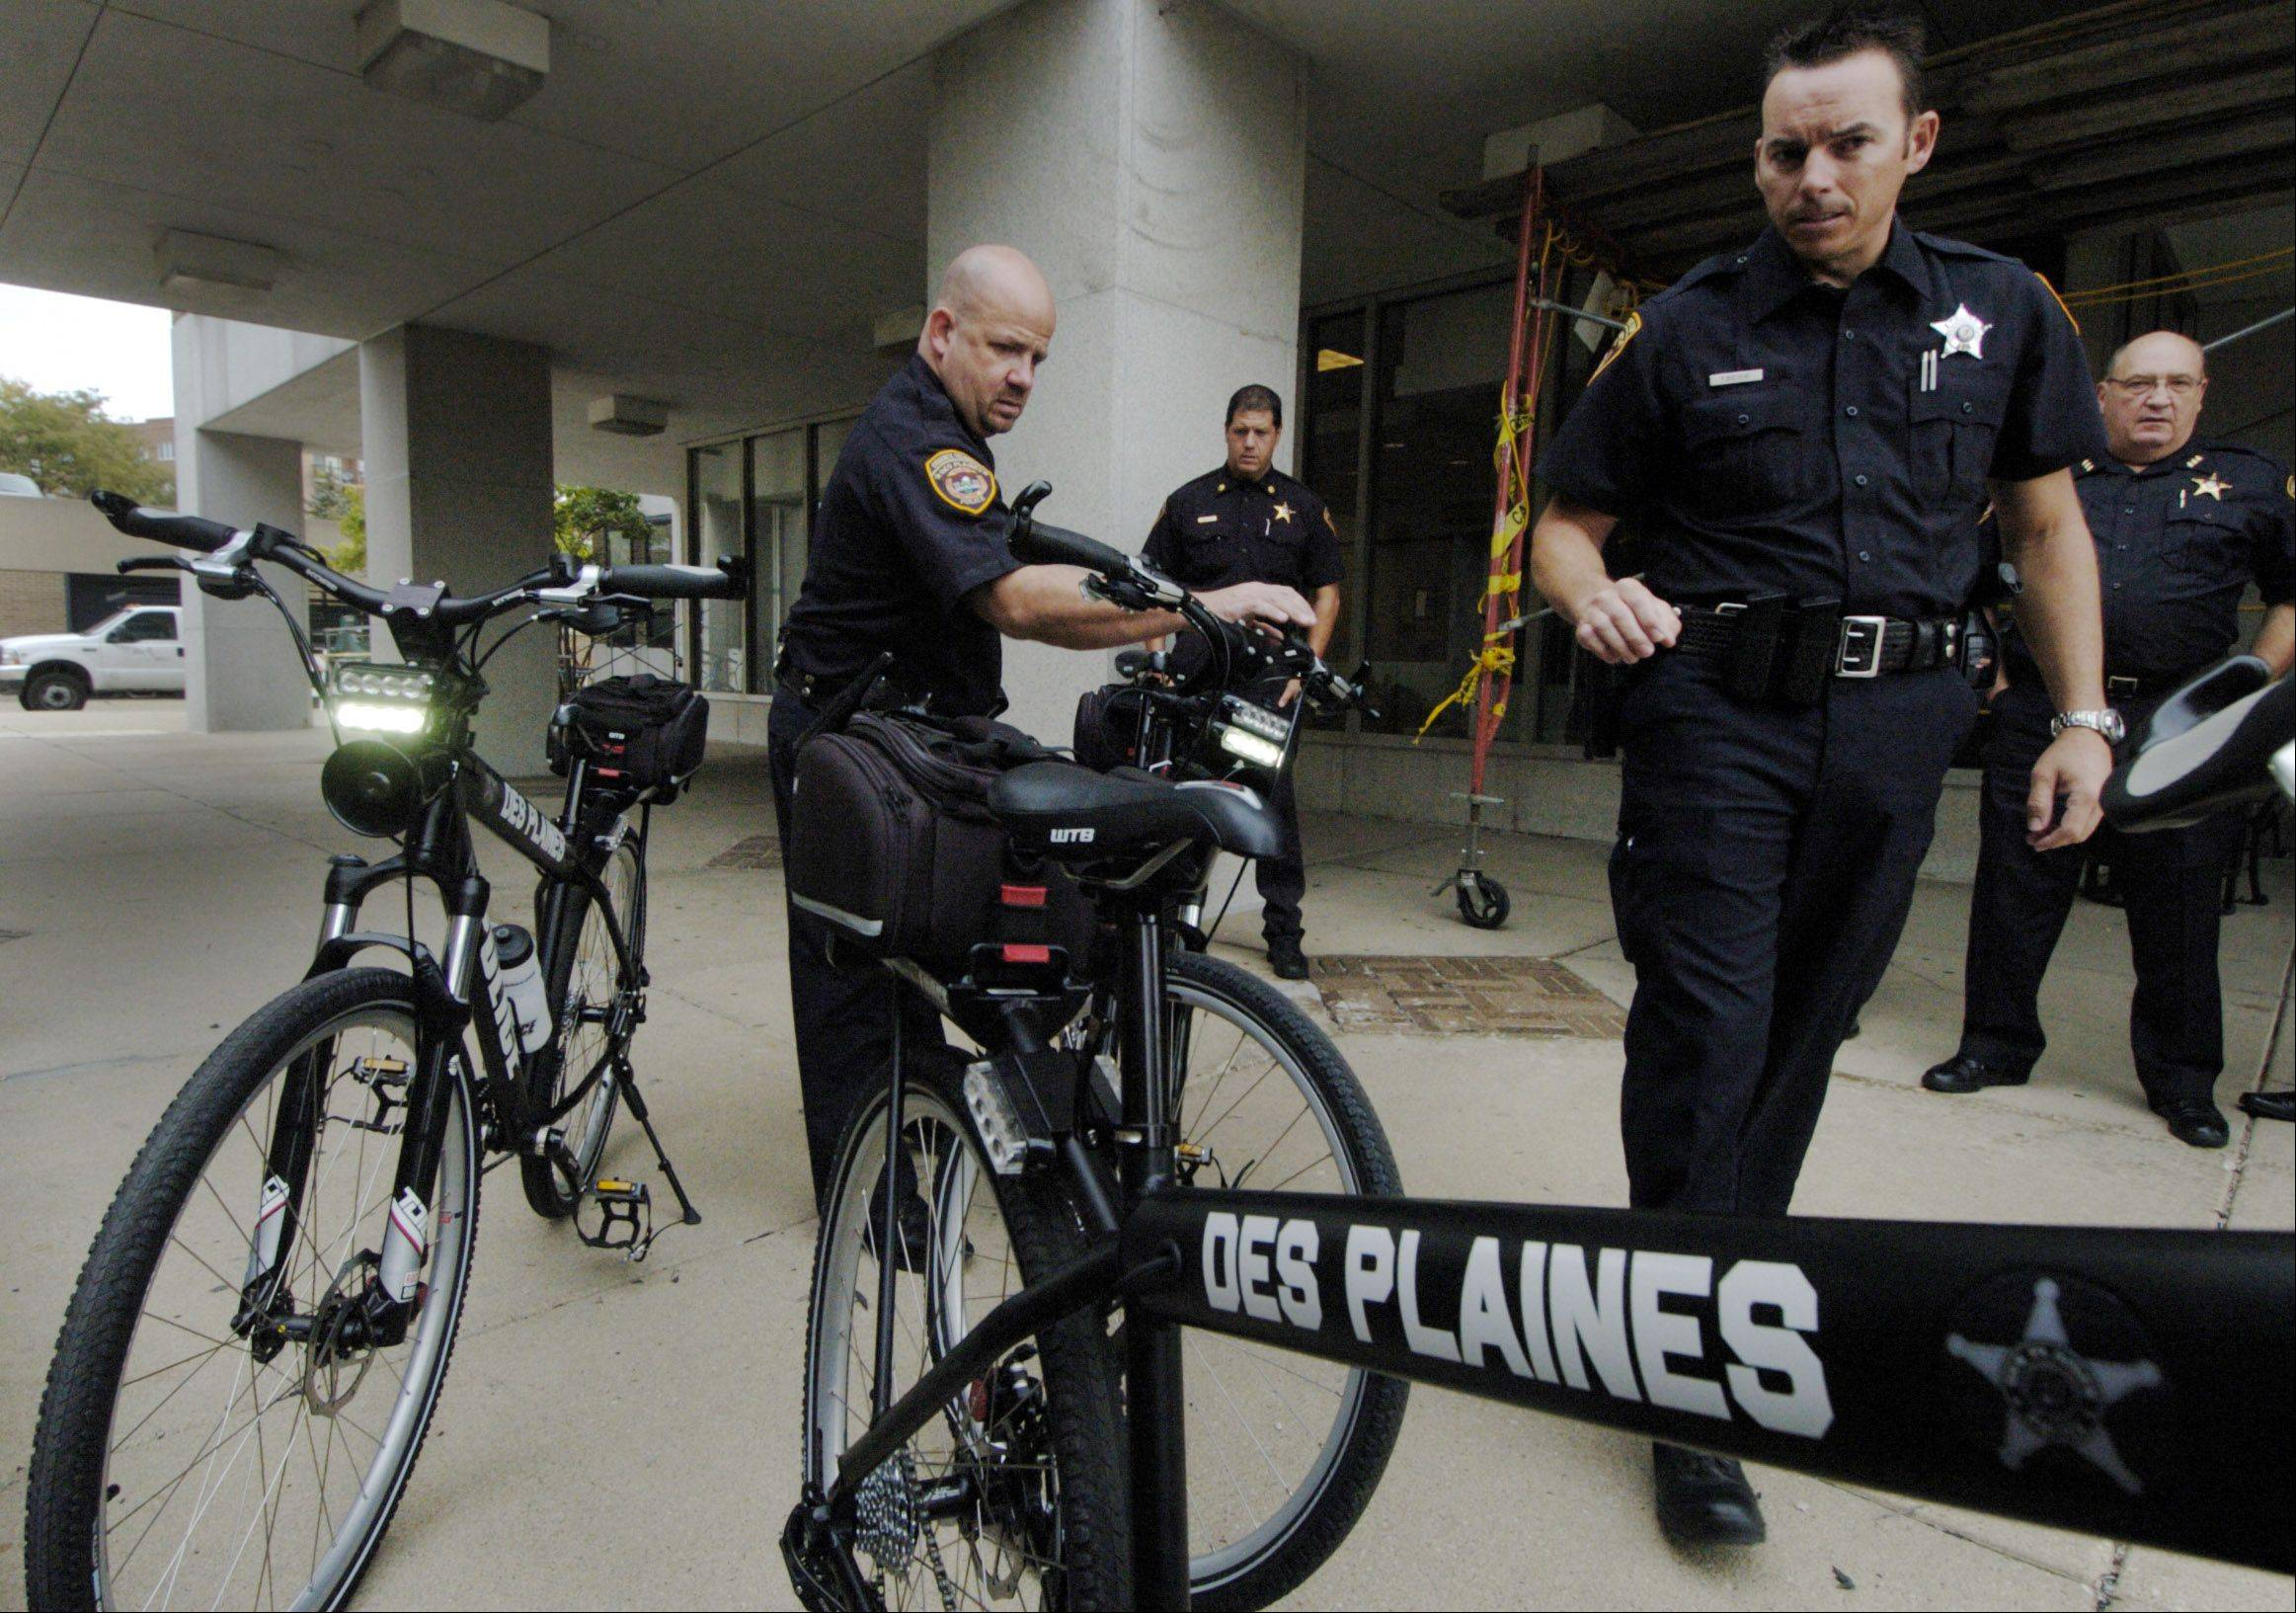 Officers Mike Heidkamp, left, and Trent Beier turn on the flashers as the Des Plaines Police Department displays its new iForce bicycles outside the police station Friday.